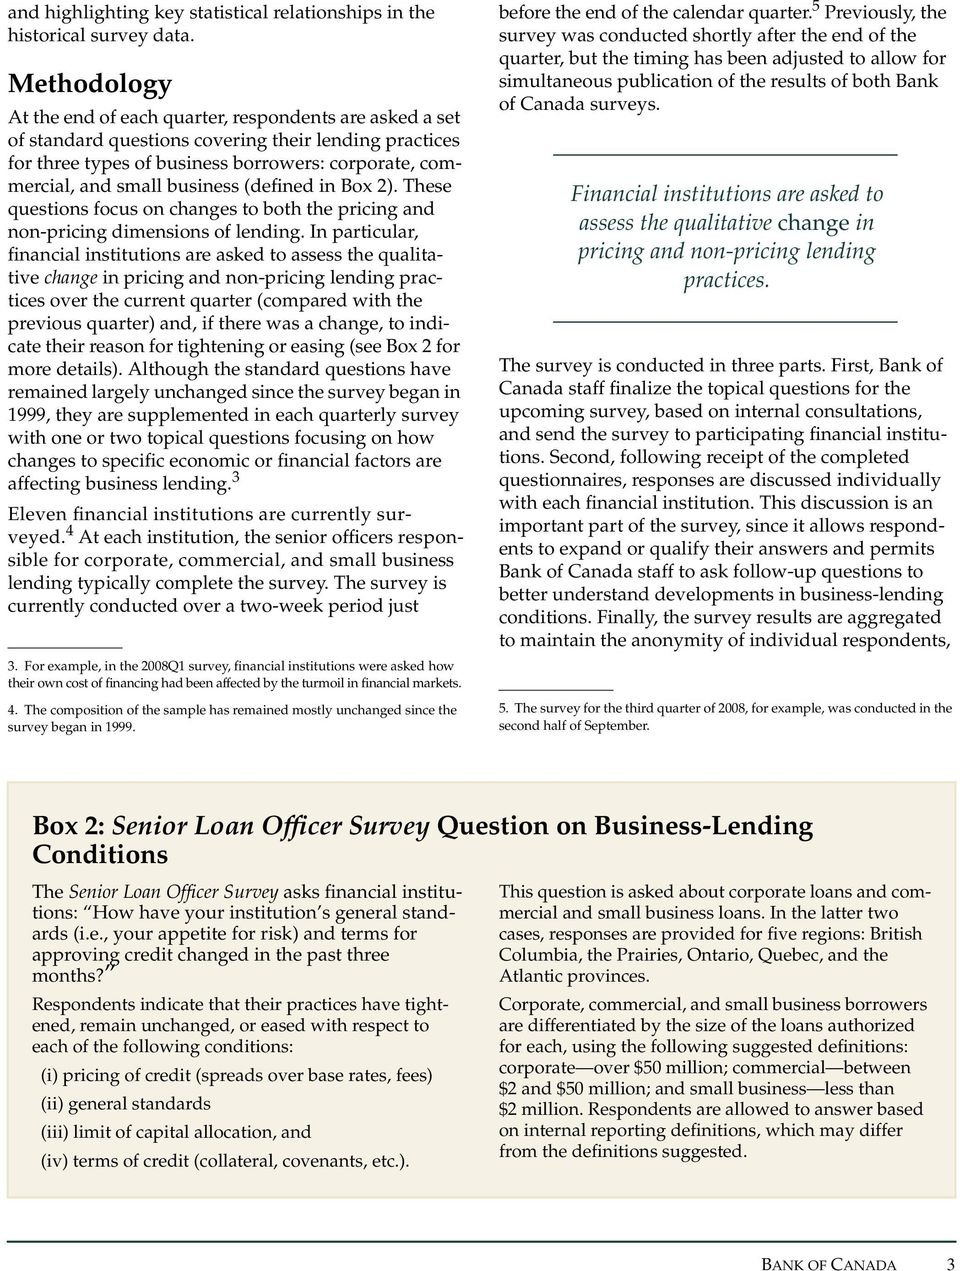 business (defined in Box 2). These questions focus on changes to both the pricing and non-pricing dimensions of lending.